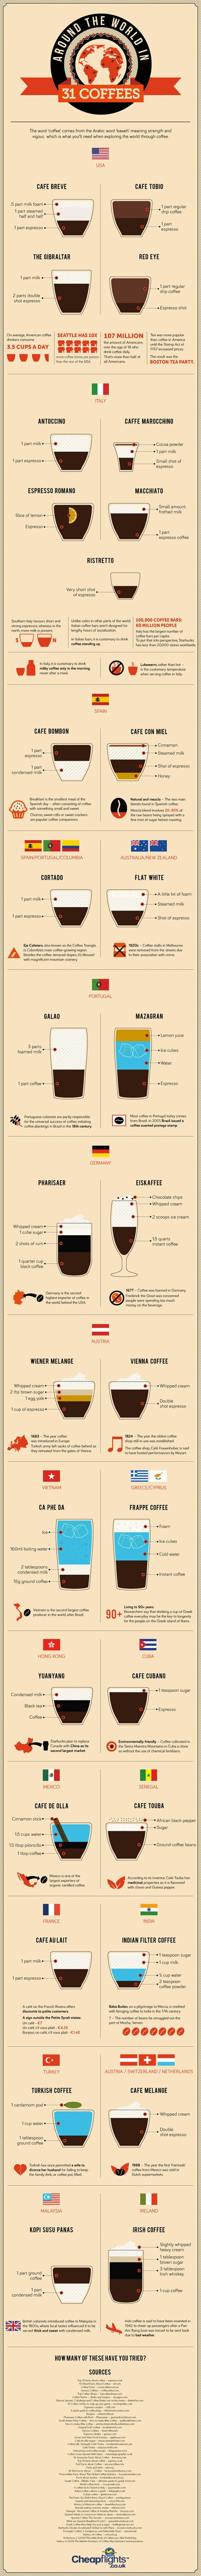 Coffee Around the World (infographic)